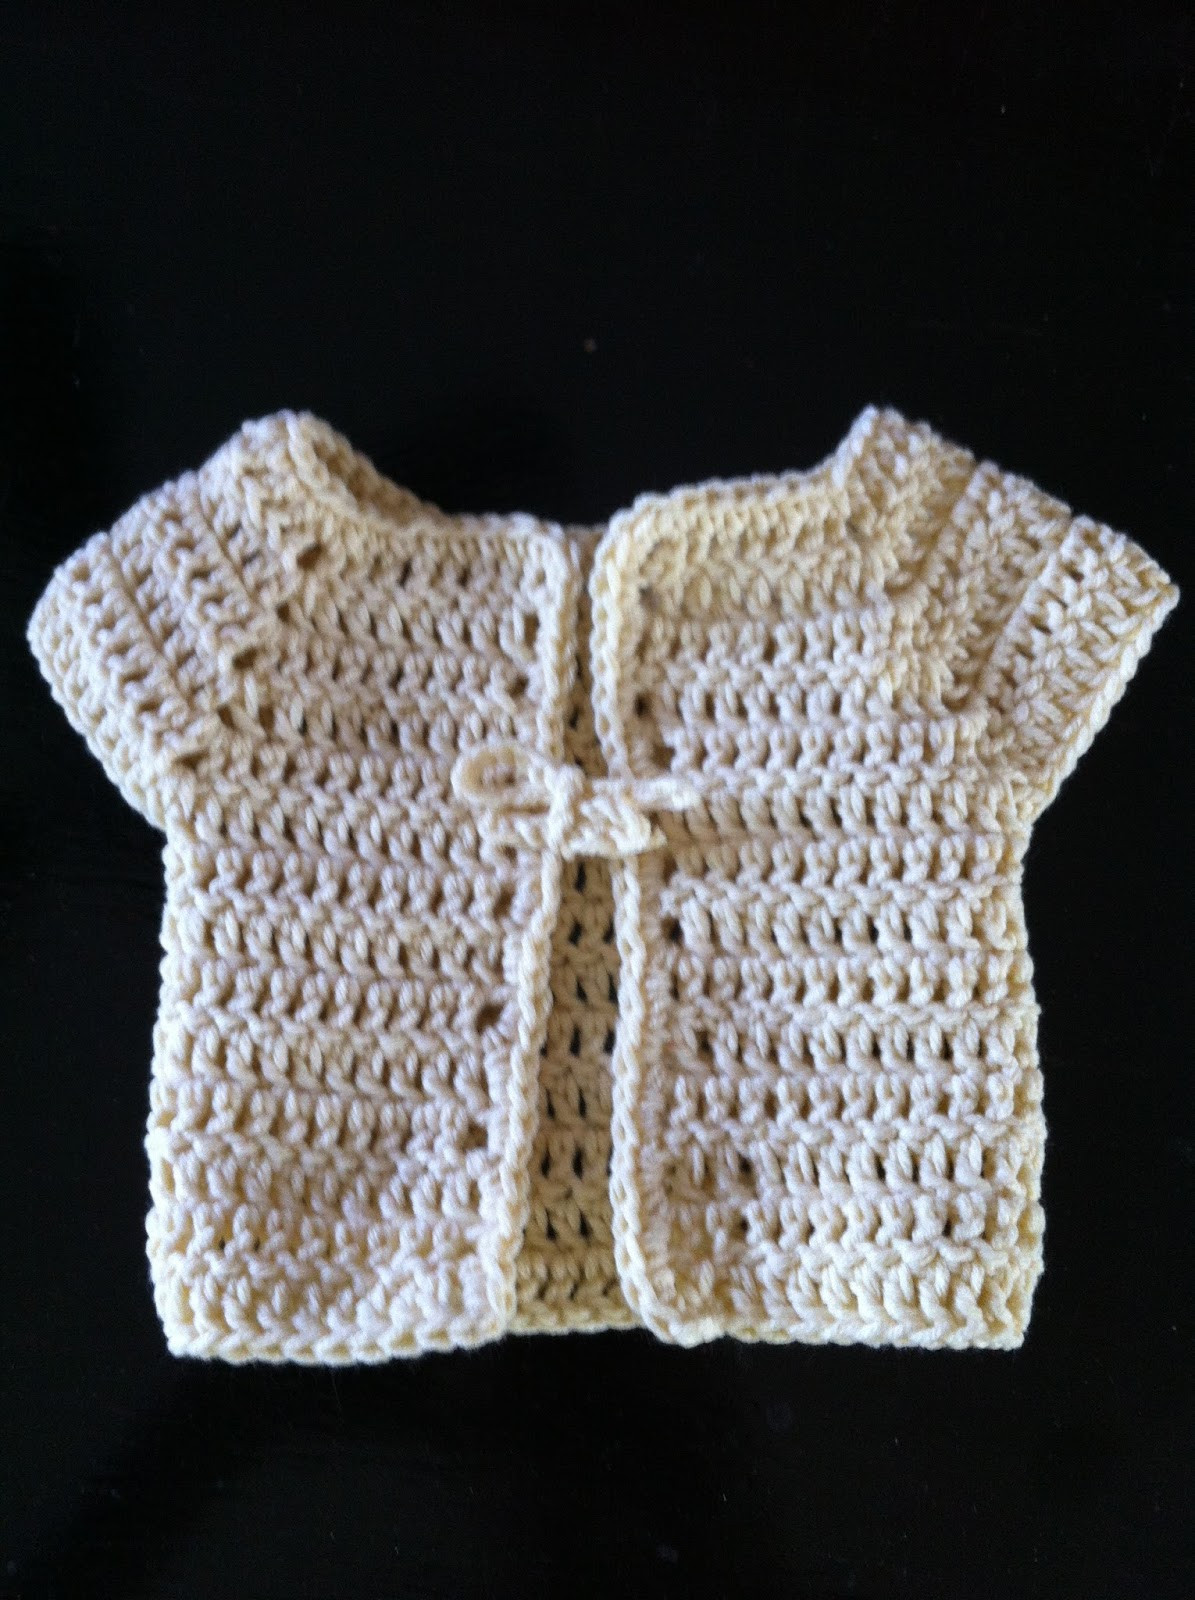 Inspirational Baby Preemie Hospital Crochet Shirt Free Pattern Crochet Shirts Of Brilliant 43 Ideas Crochet Shirts